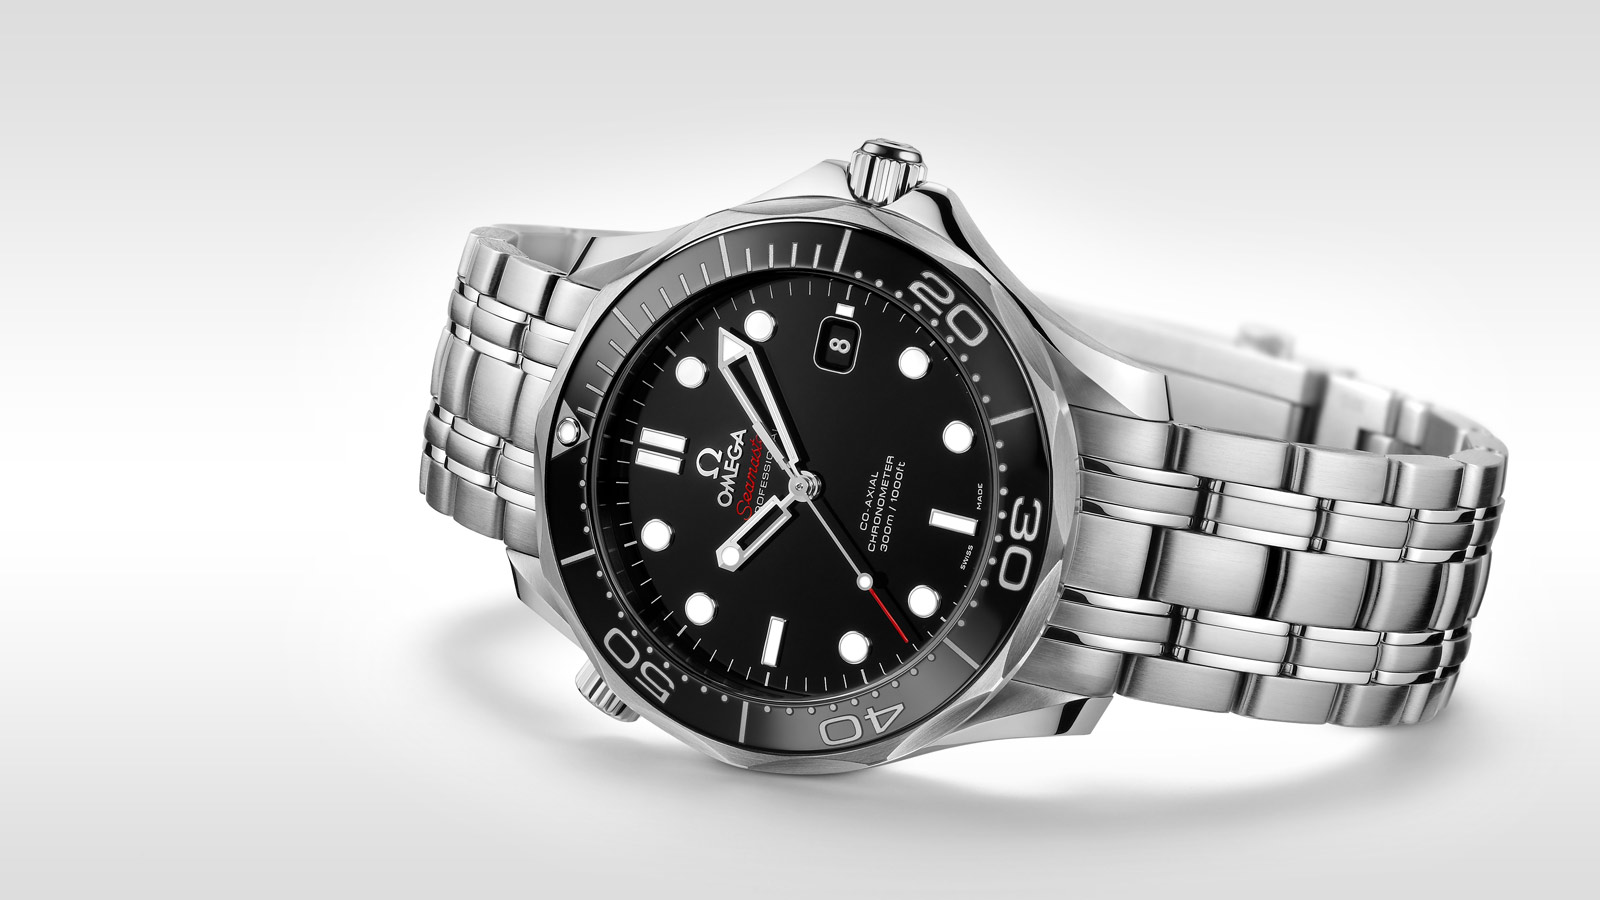 Seamaster ダイバー 300M Diver 300M Co‑Axial 41 mm - 212.30.41.20.01.003 - ビュー 1